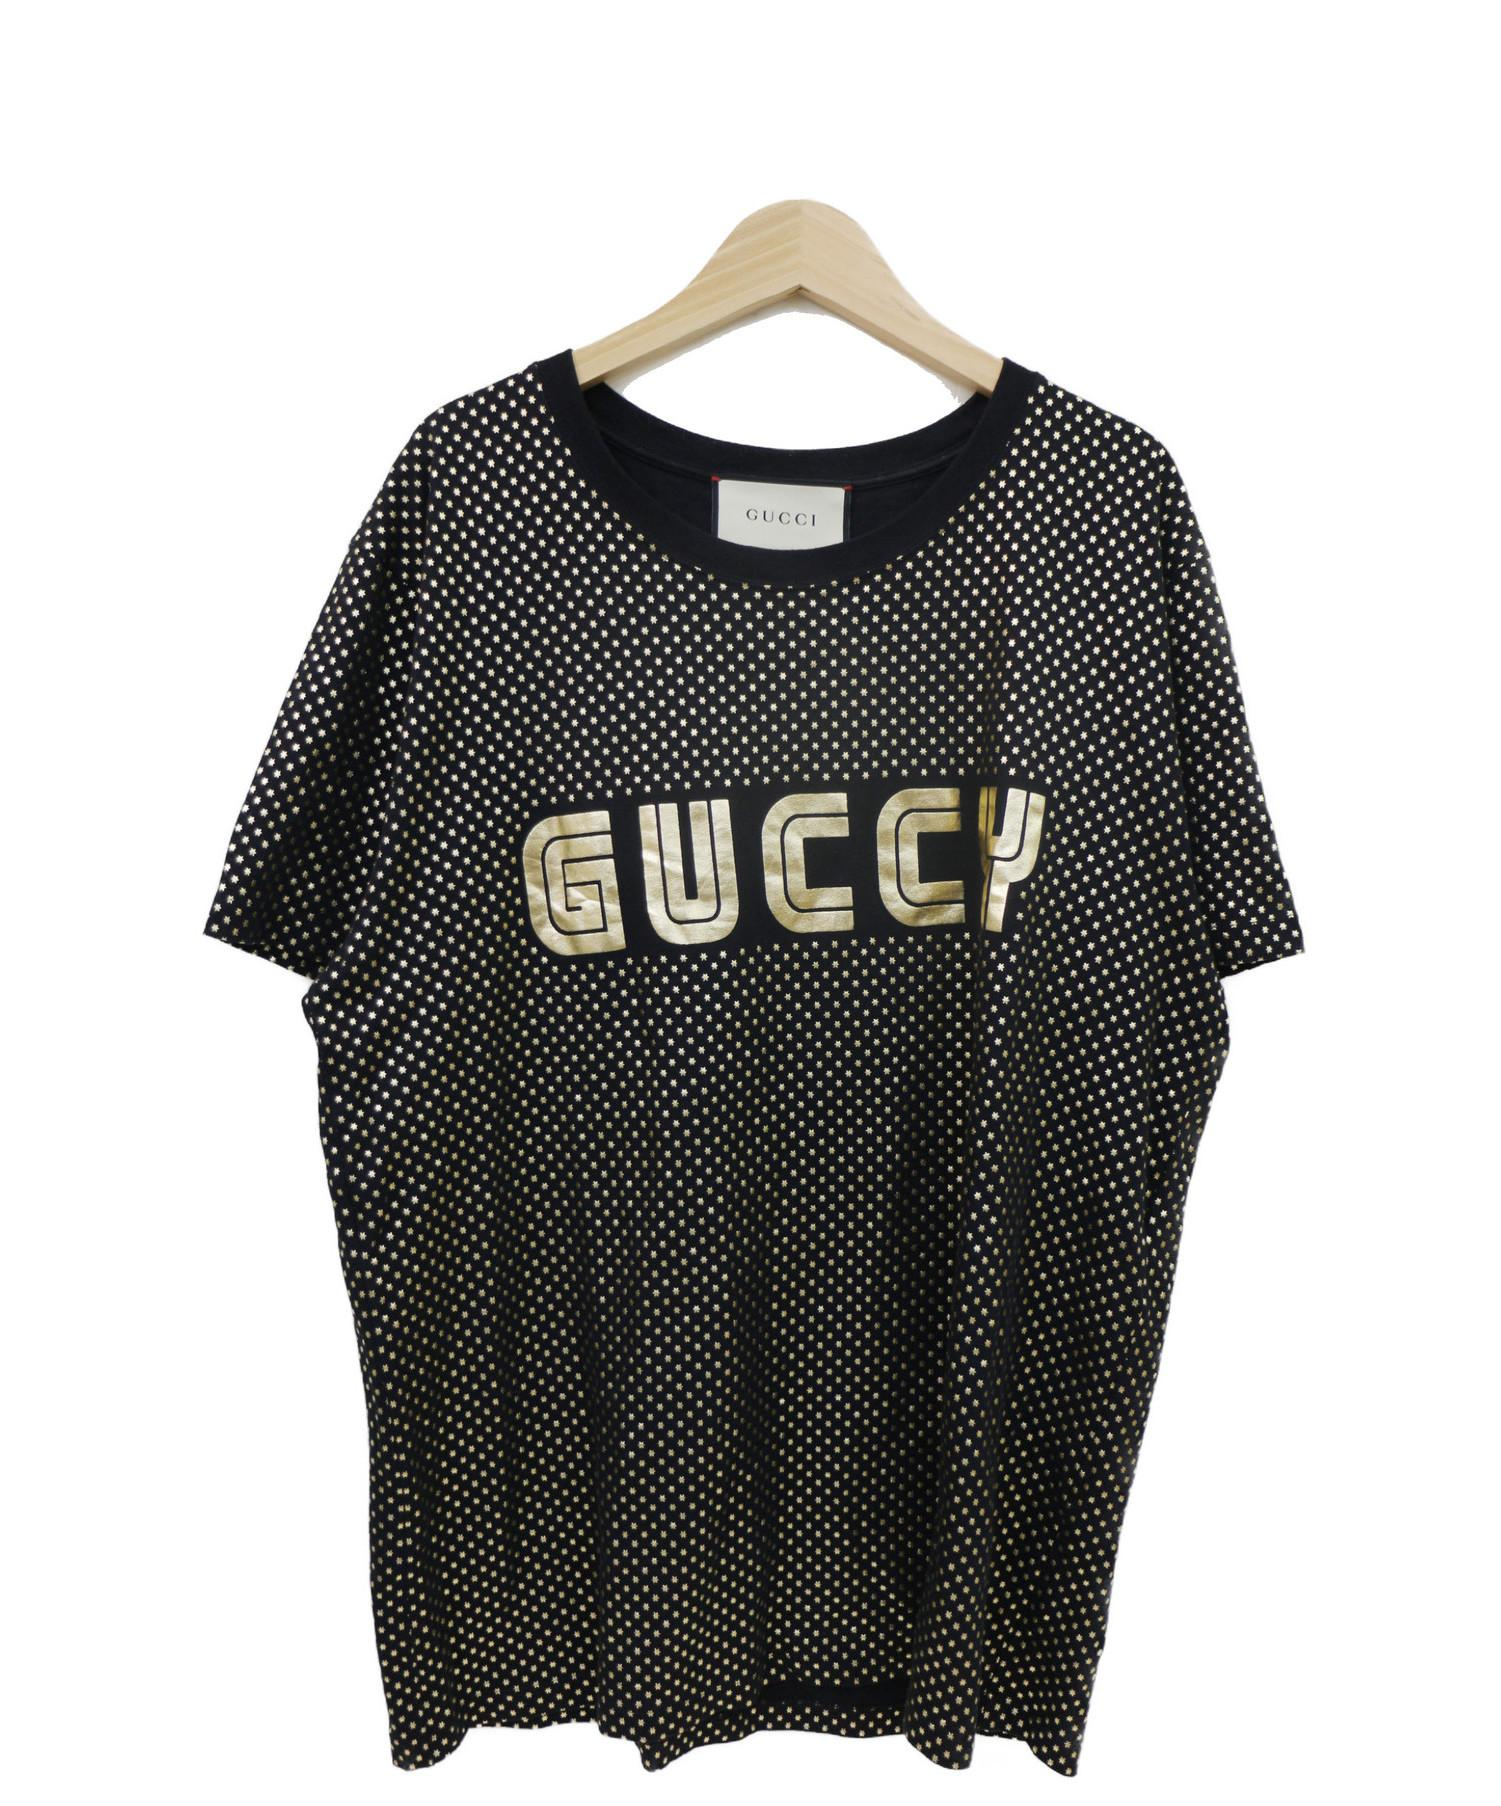 new concept 50e1c aff16 [中古]GUCCI(グッチ)のメンズ トップス GUCCYプリントTシャツ